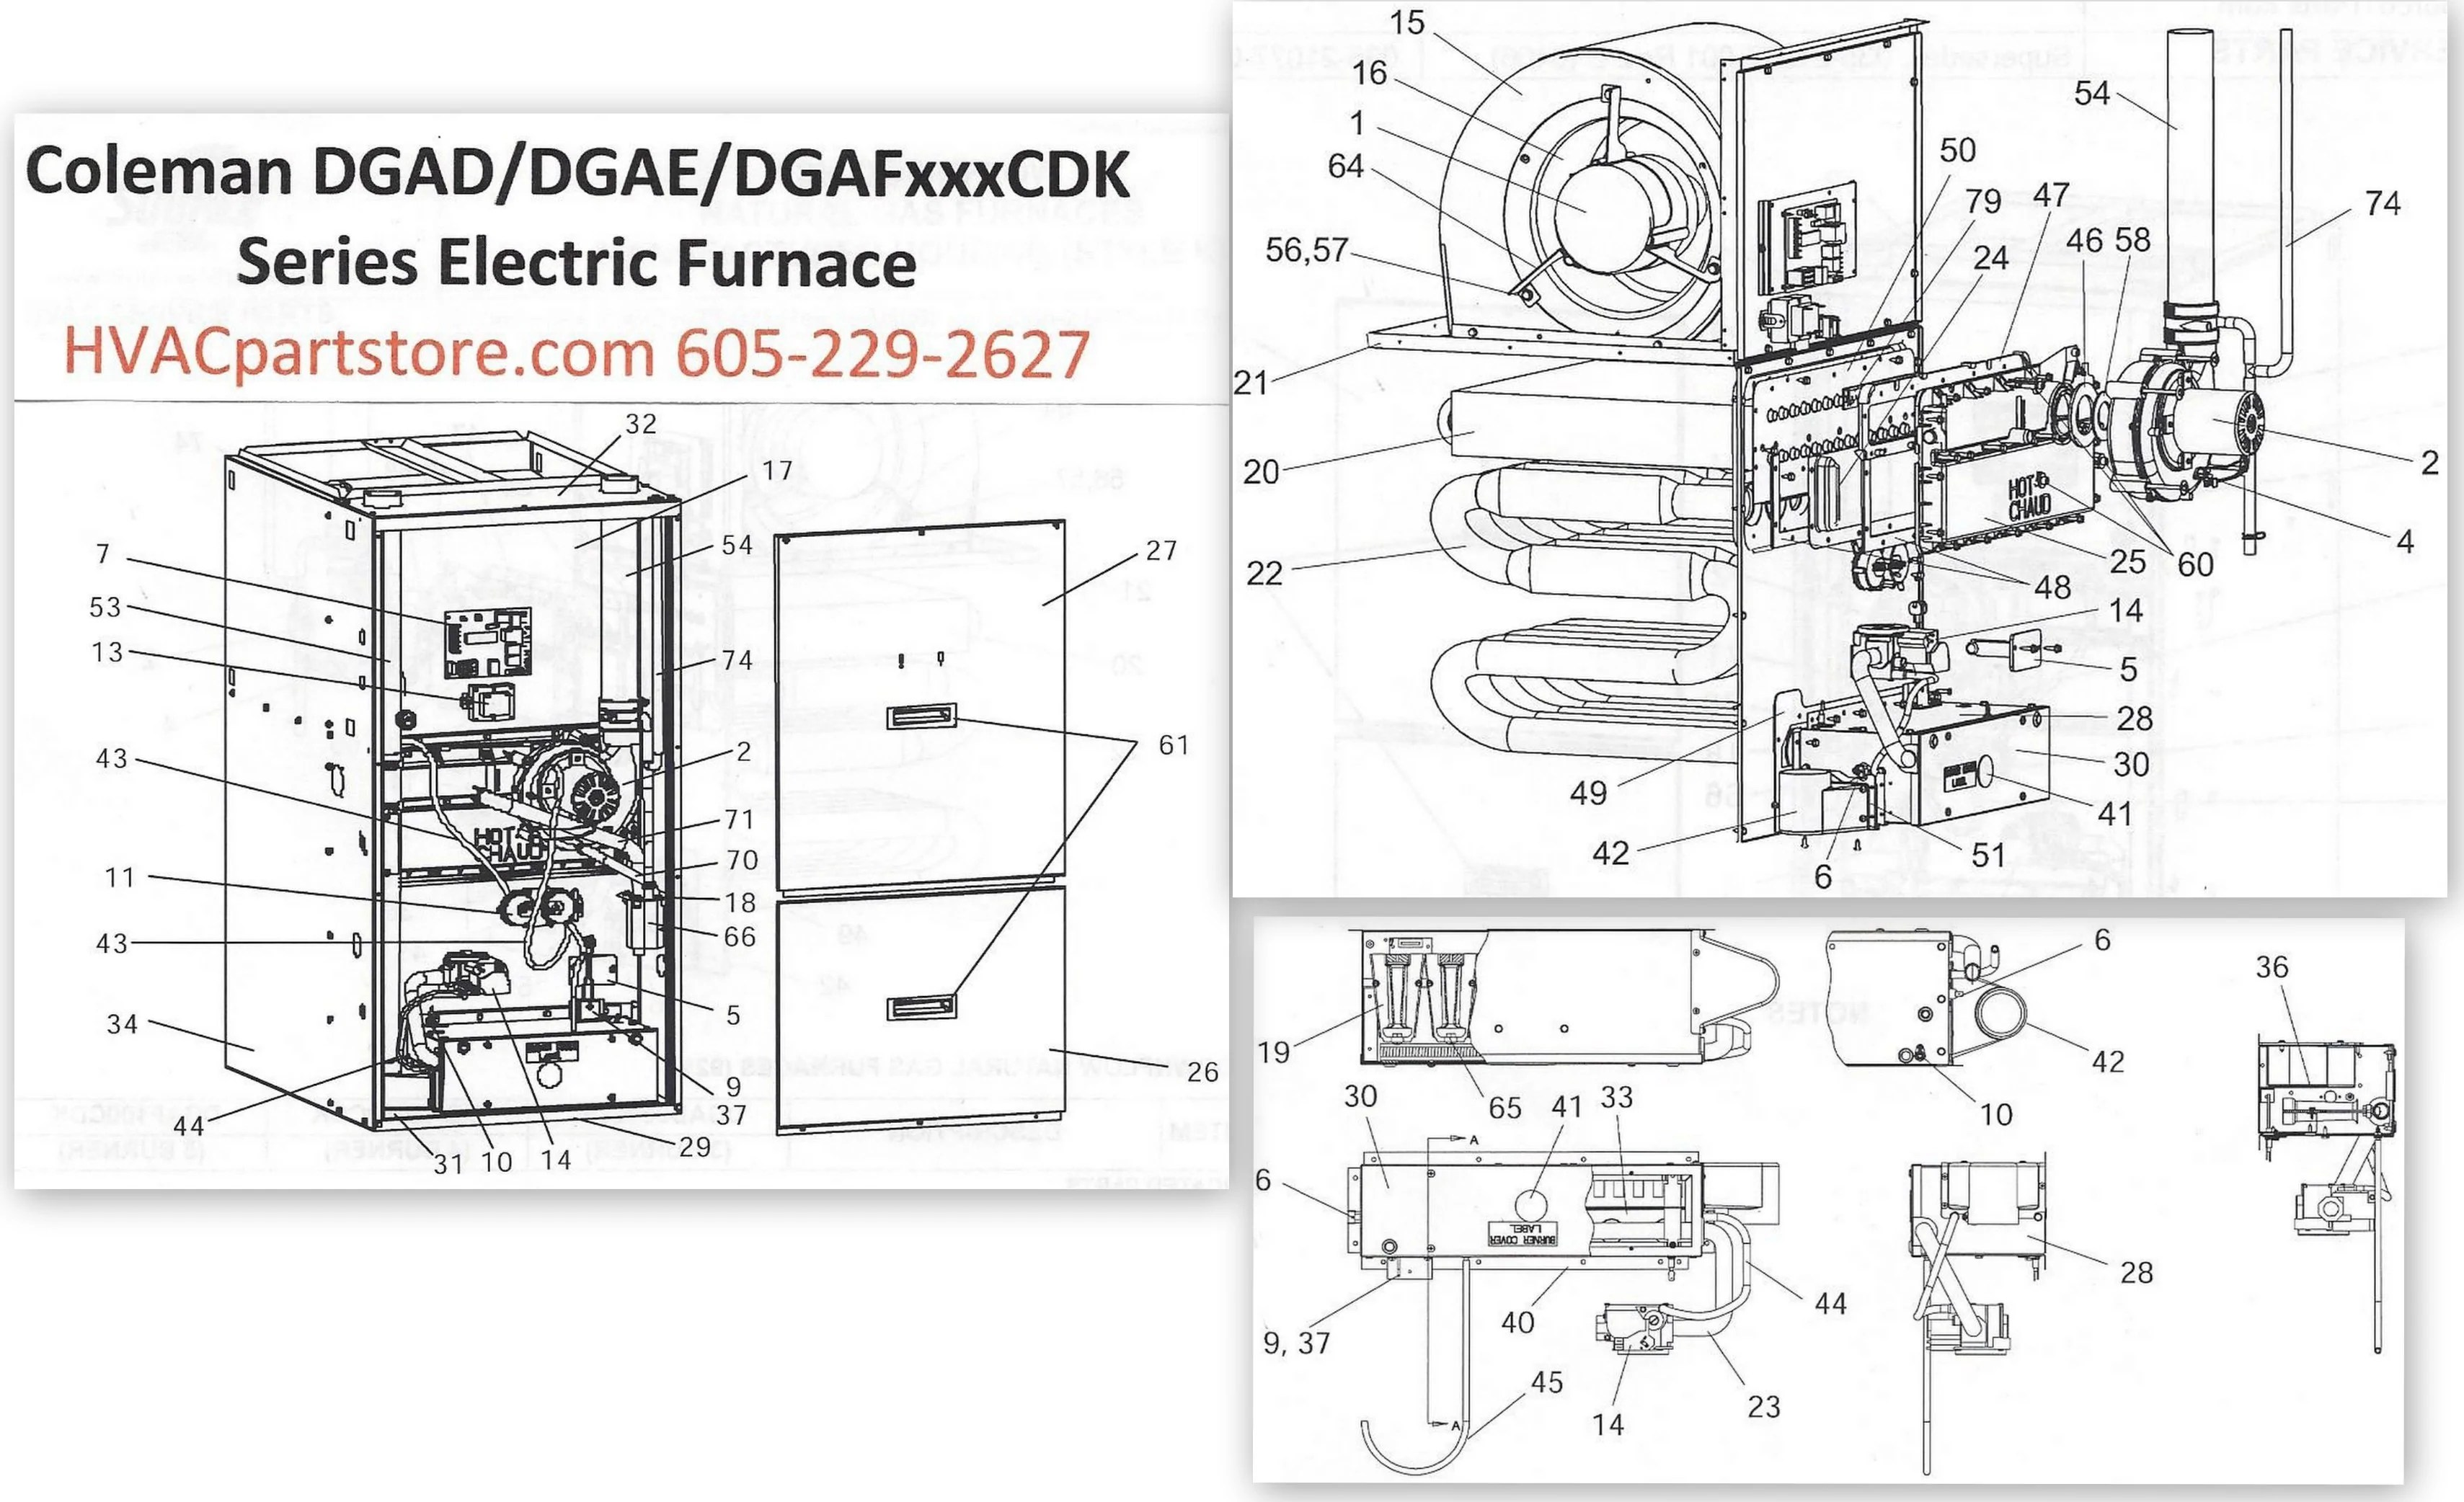 wiring basic diagram furnace dggaa090bdta wiring diagrams for basic furnace schematic [ 3418 x 2084 Pixel ]